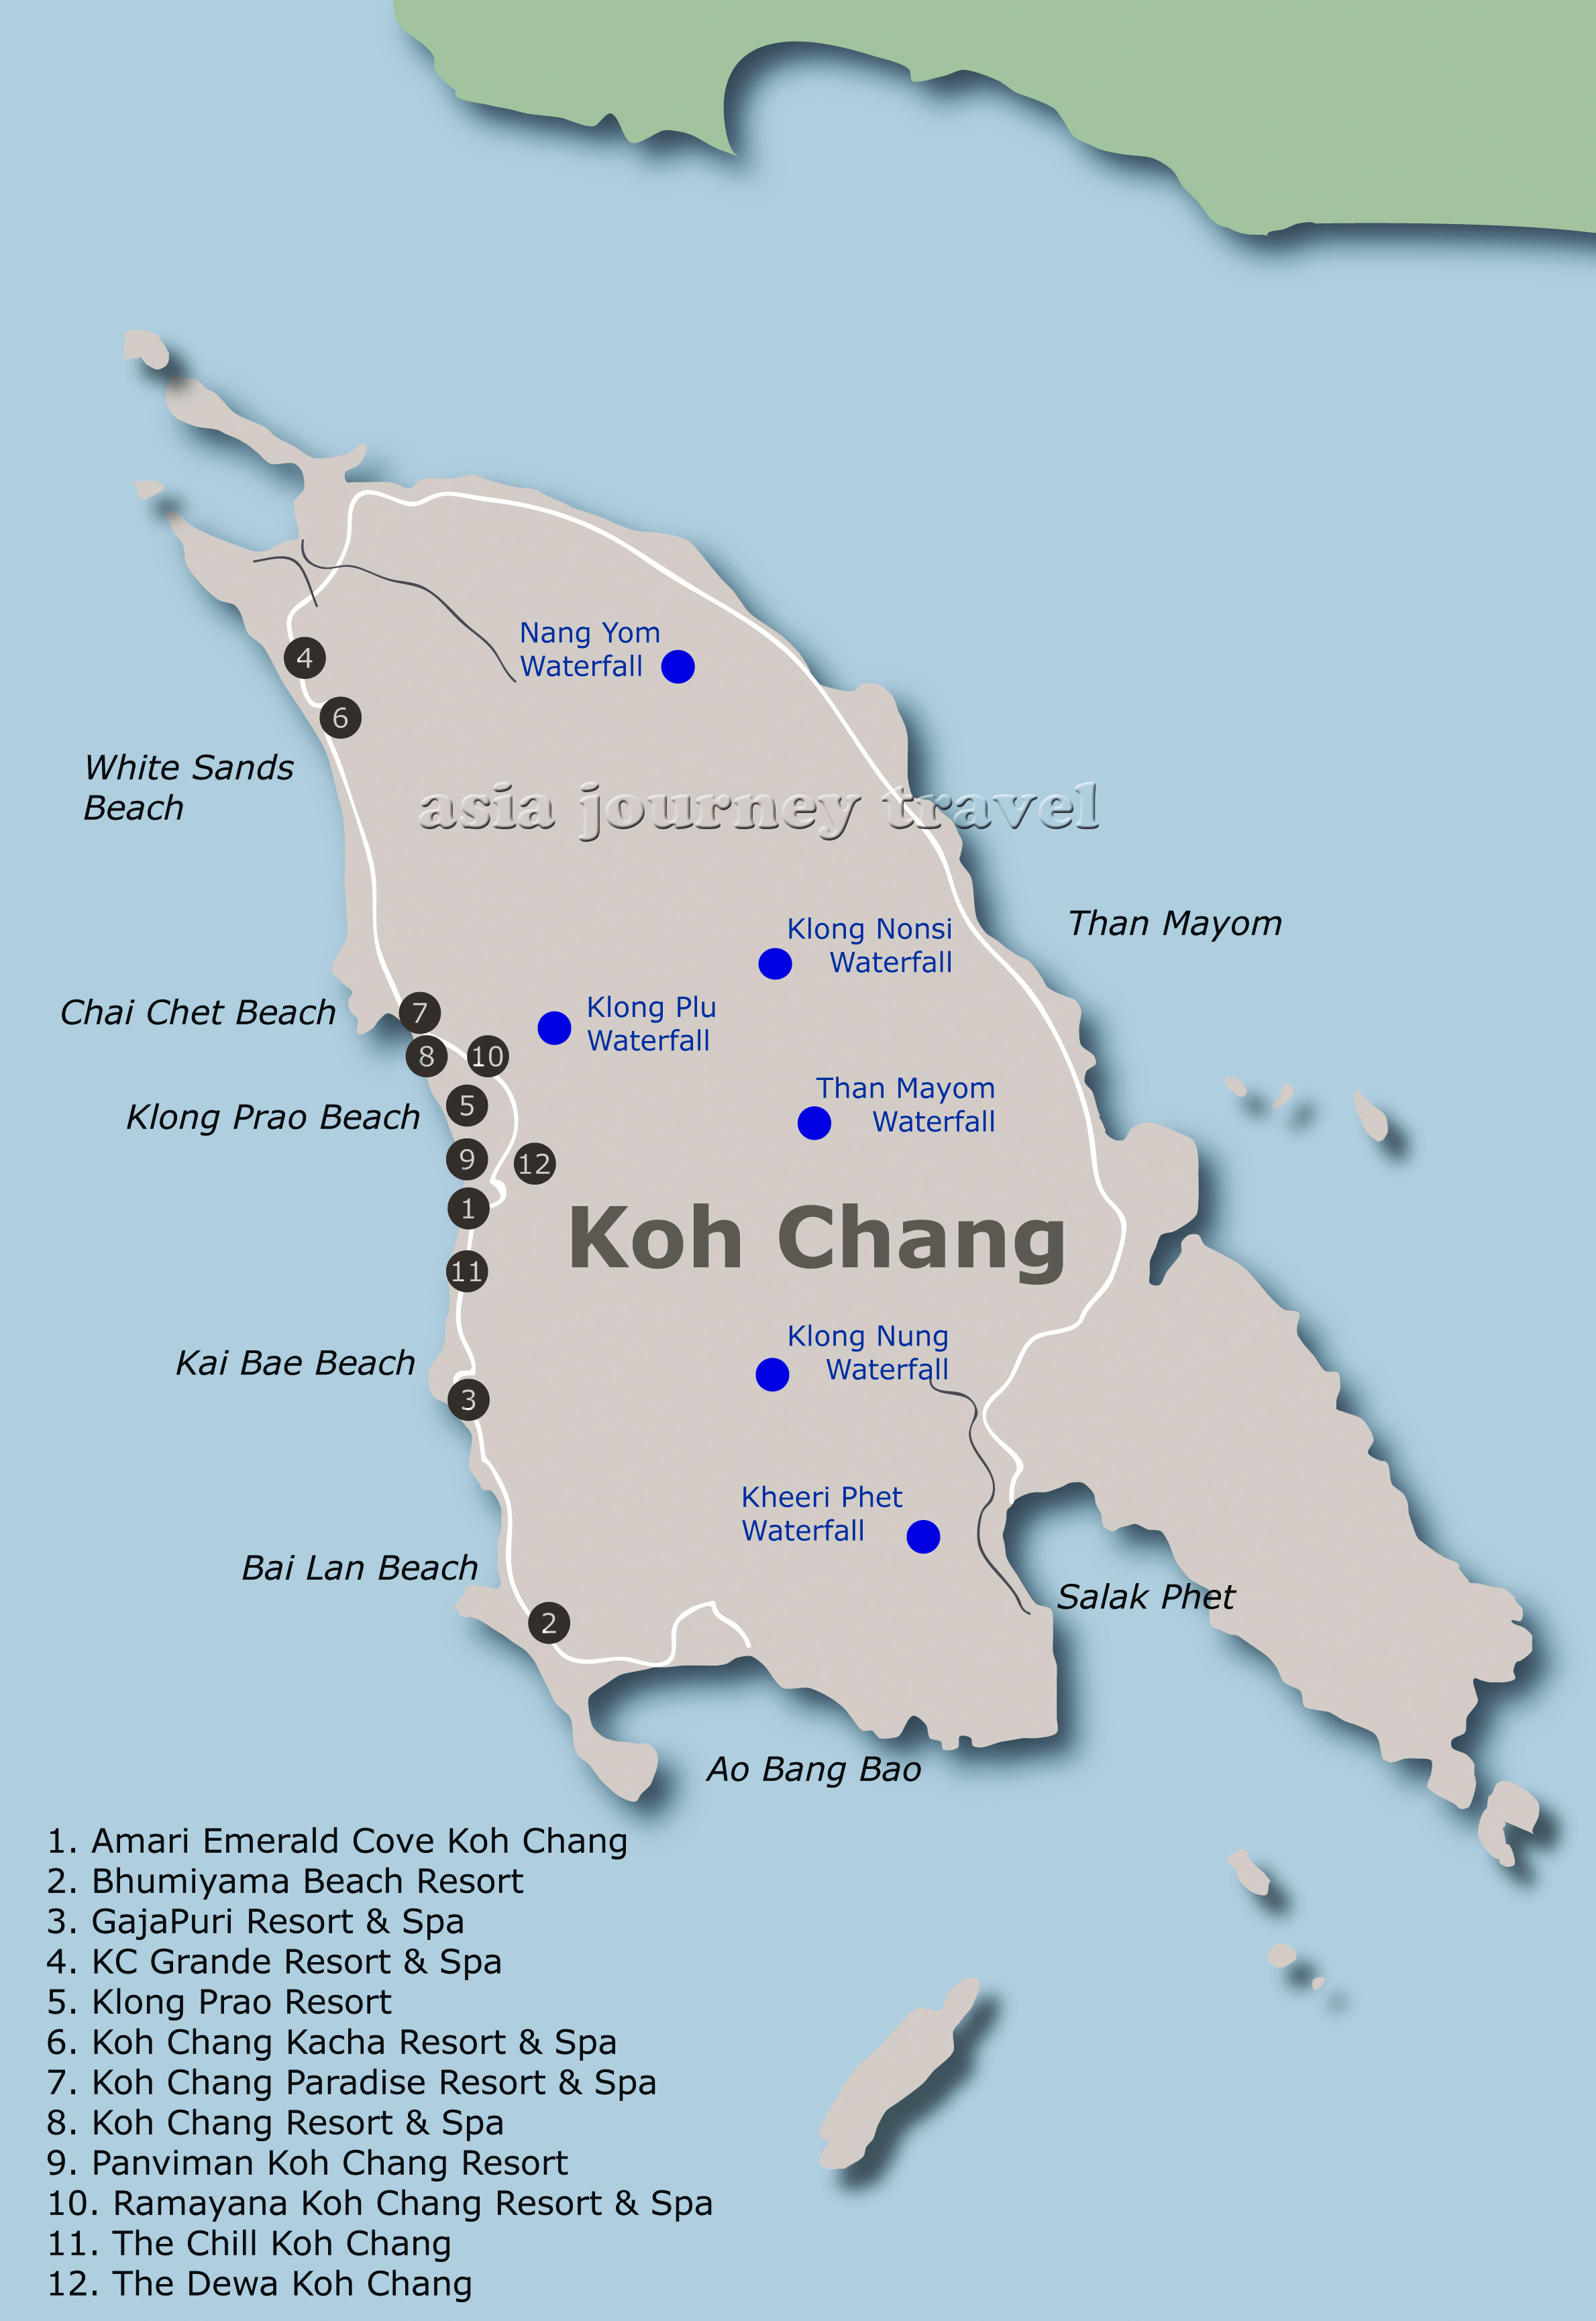 Koh Chang | Asia Journey